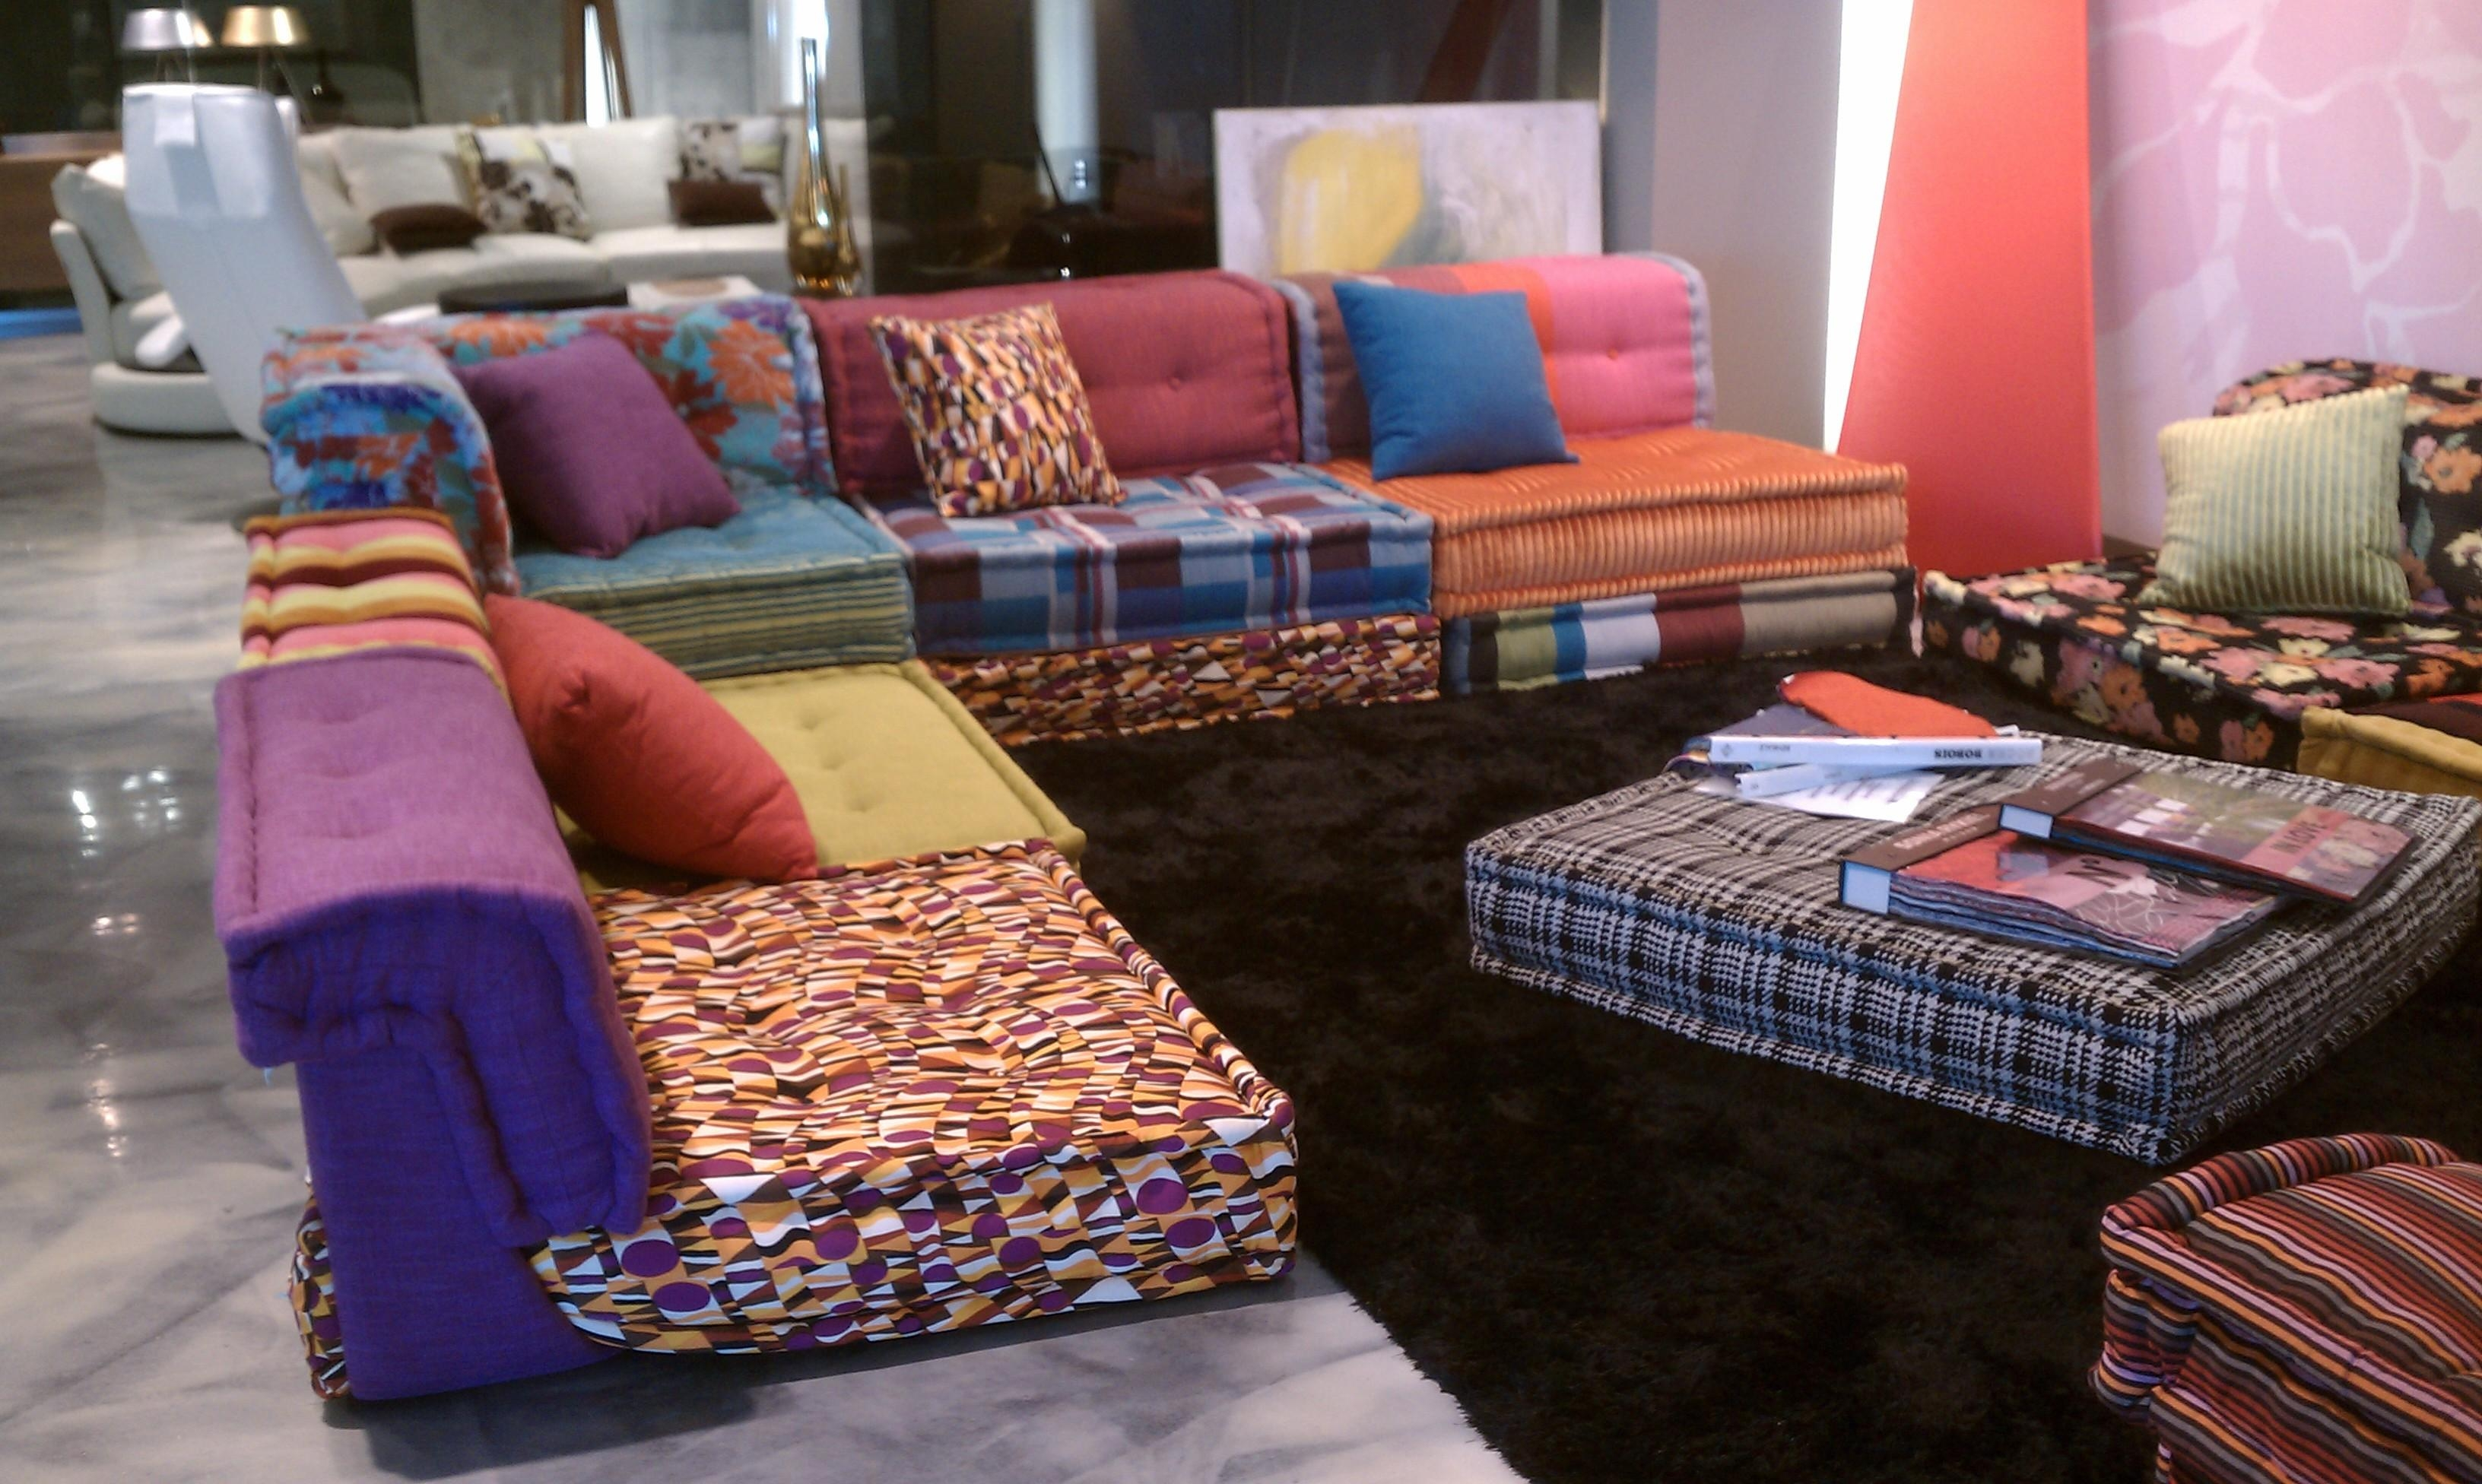 20 photos roche bobois mah jong sofas sofa ideas. Black Bedroom Furniture Sets. Home Design Ideas